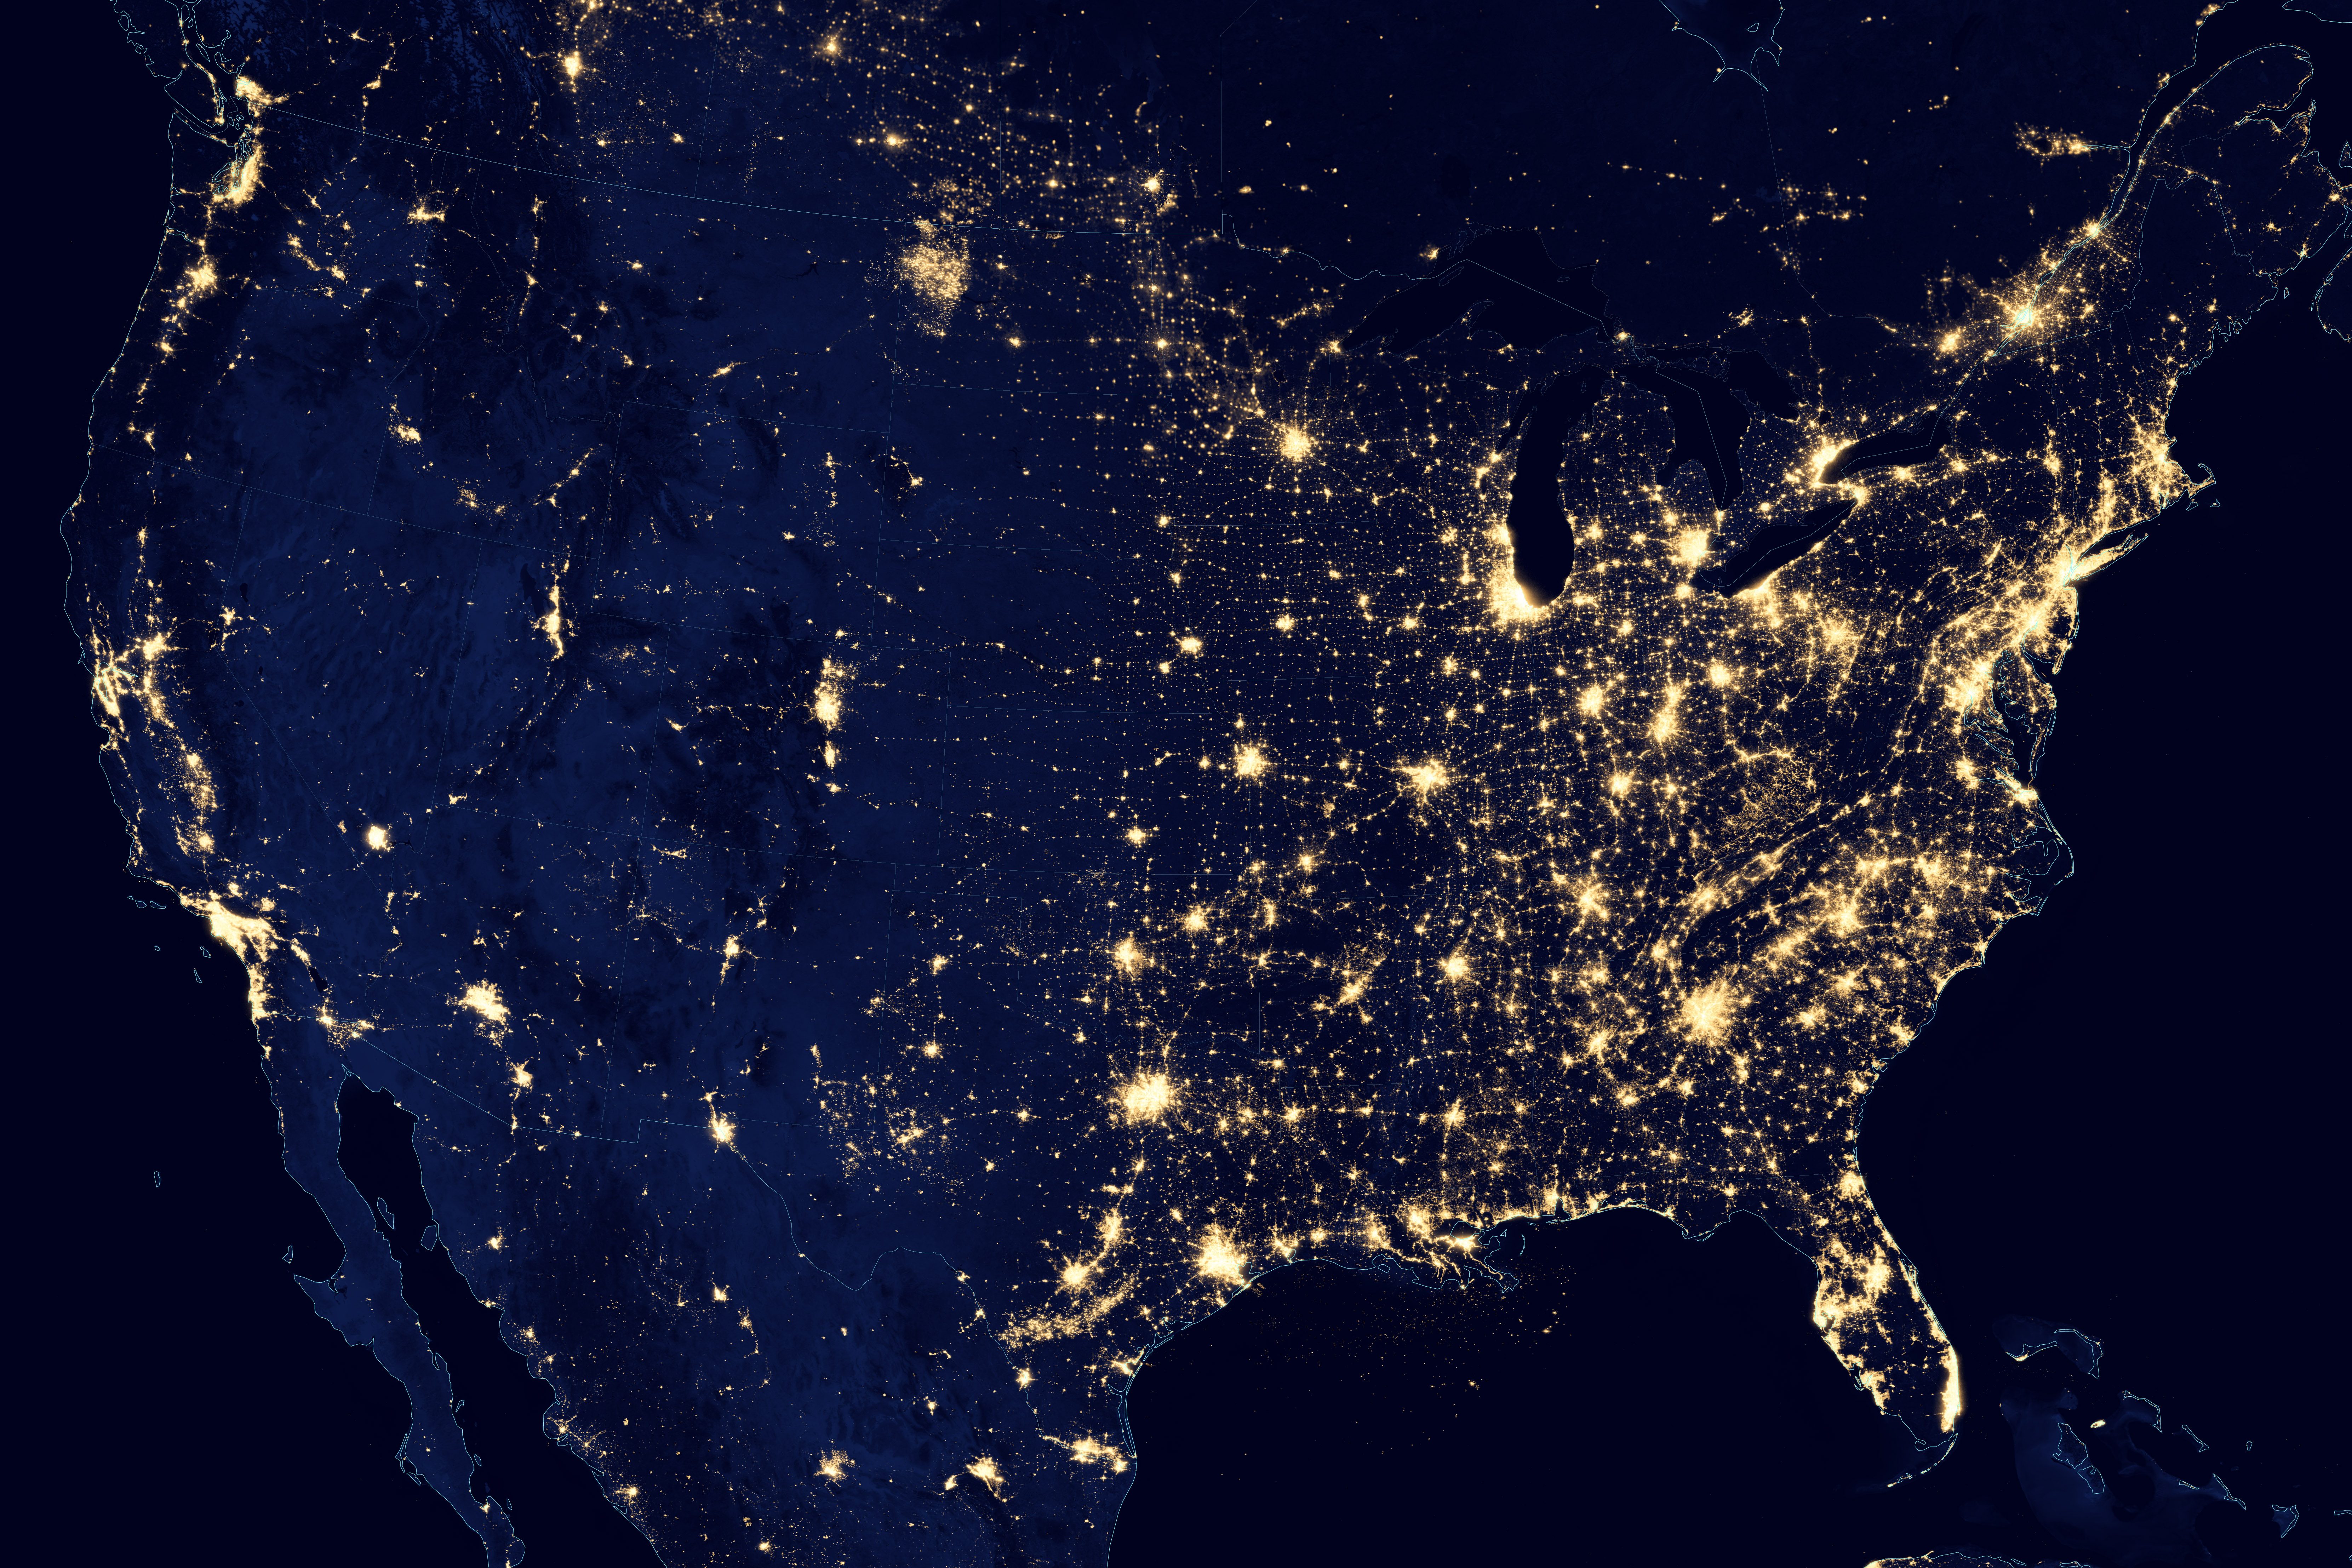 Light Pollution In The Continental Us As Seen From Space